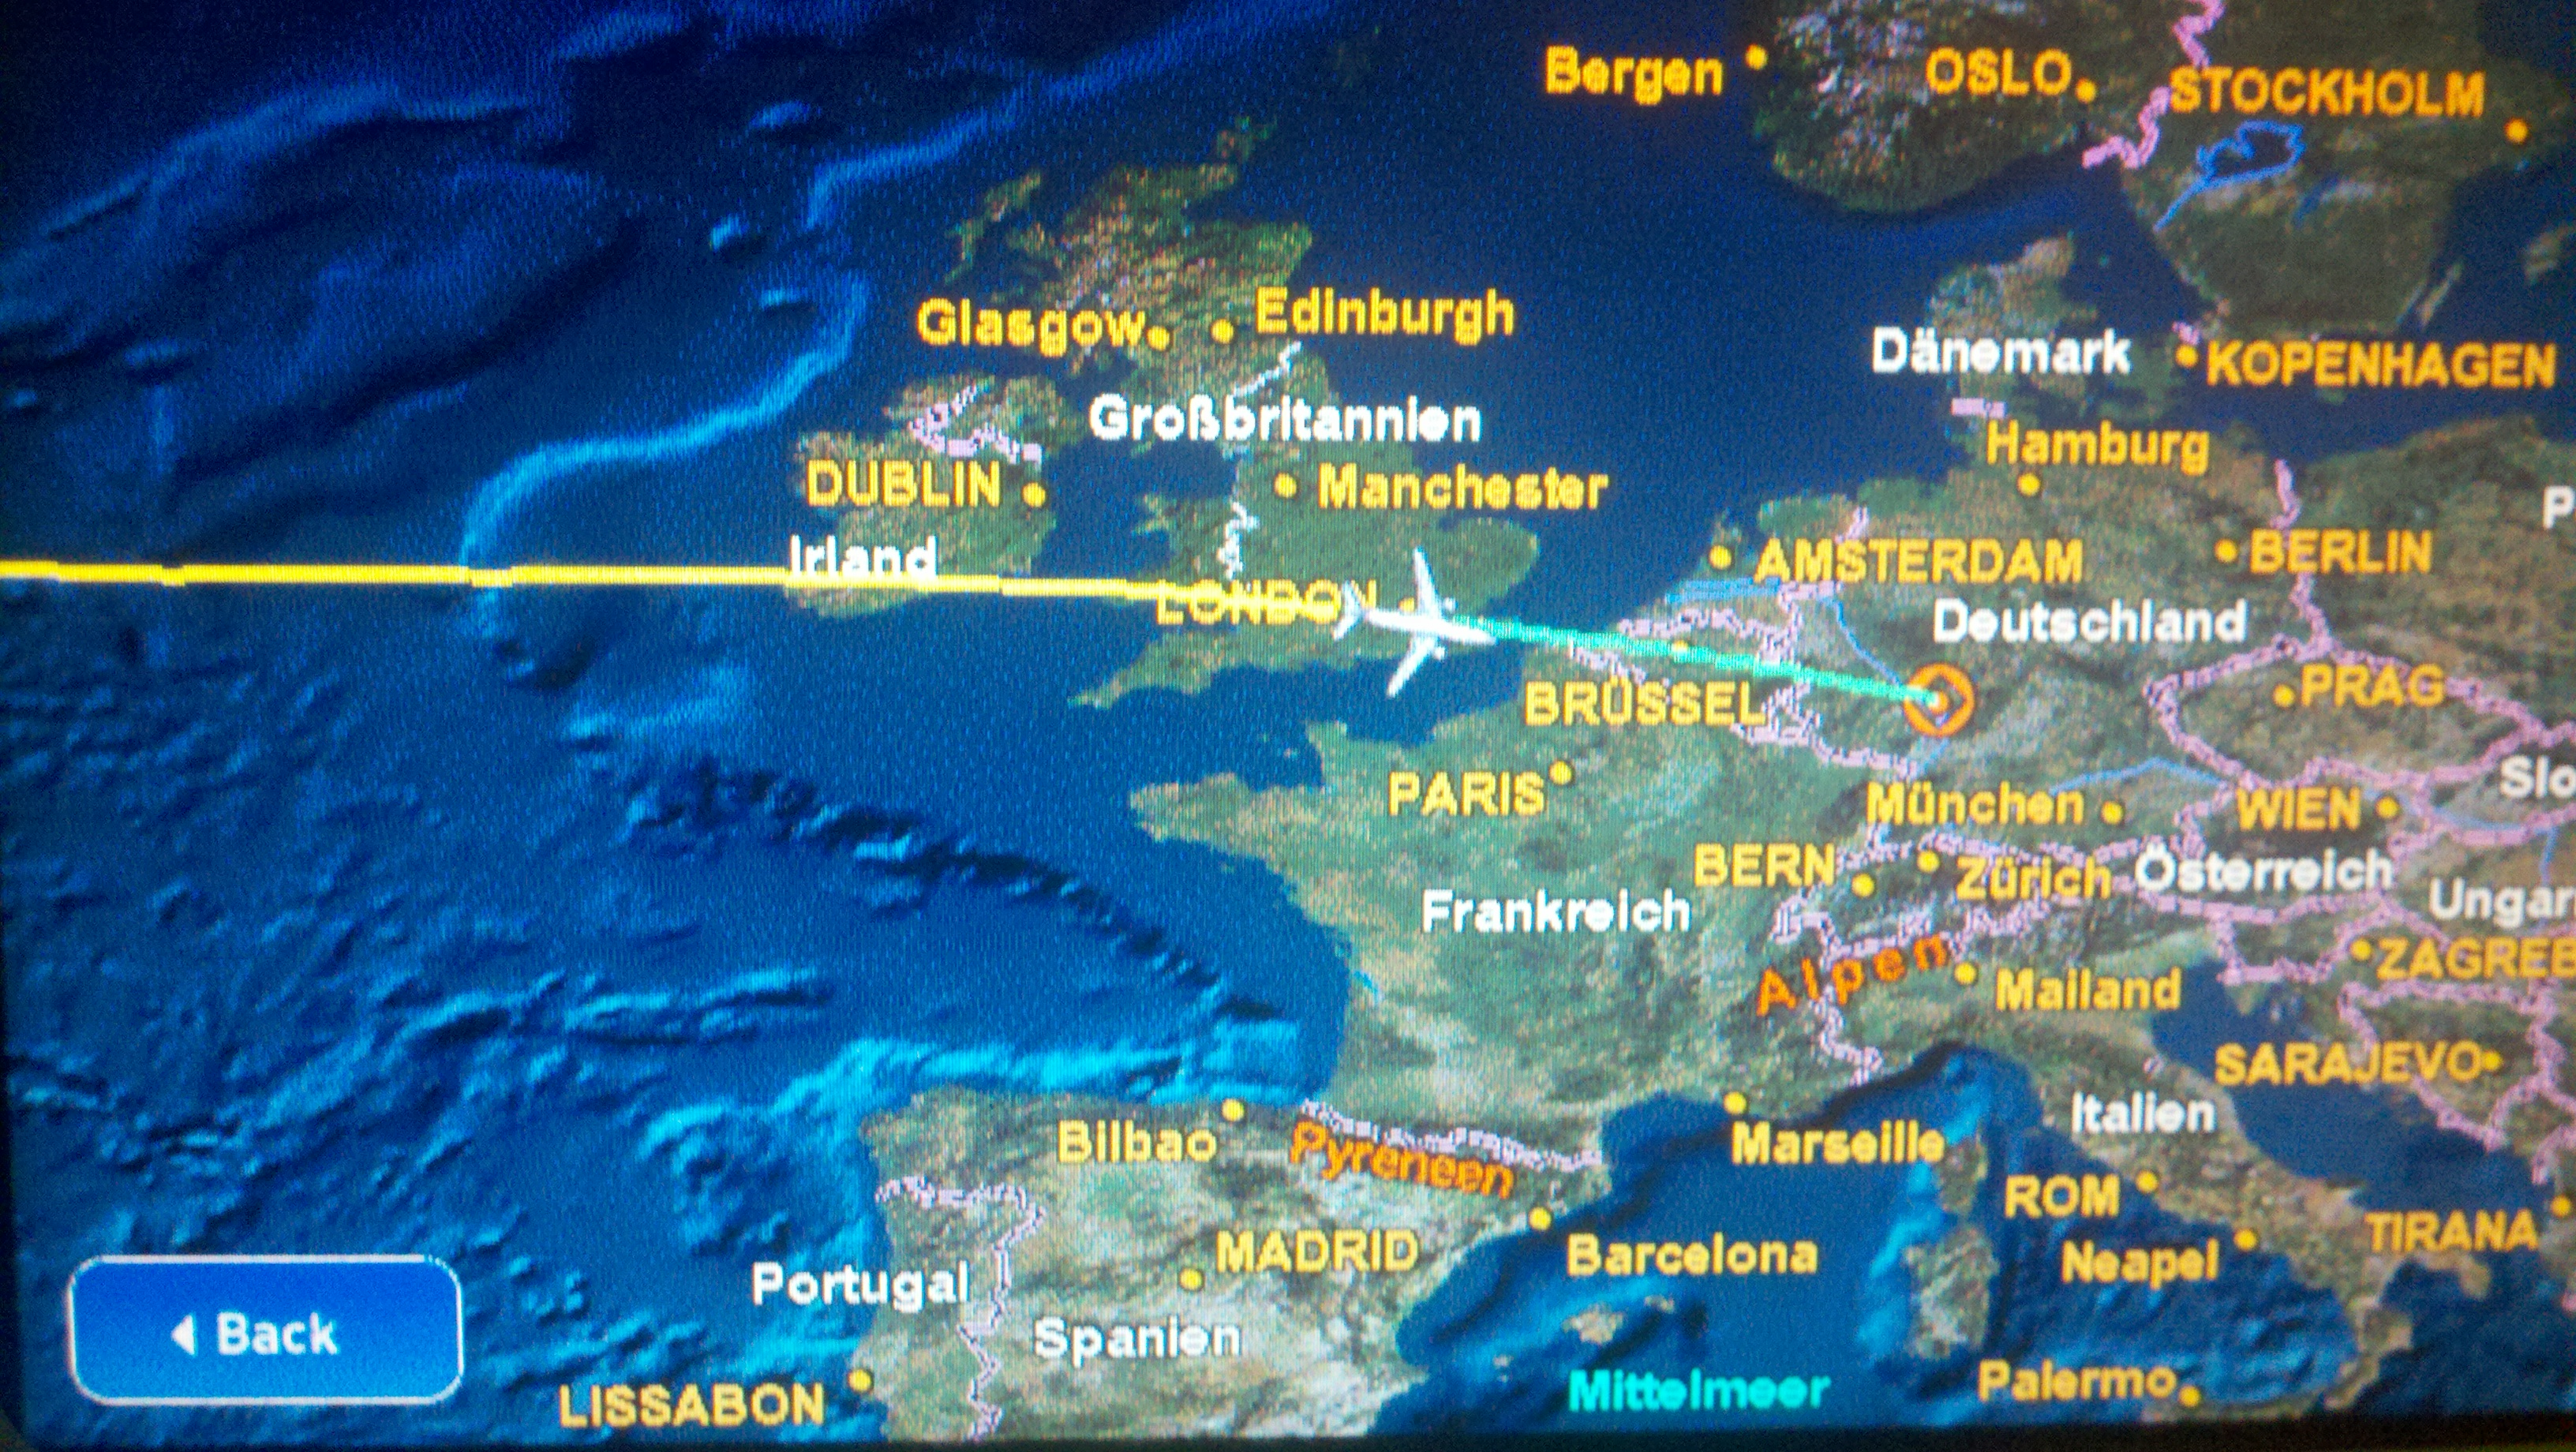 the map on the back of the seat as we passed London